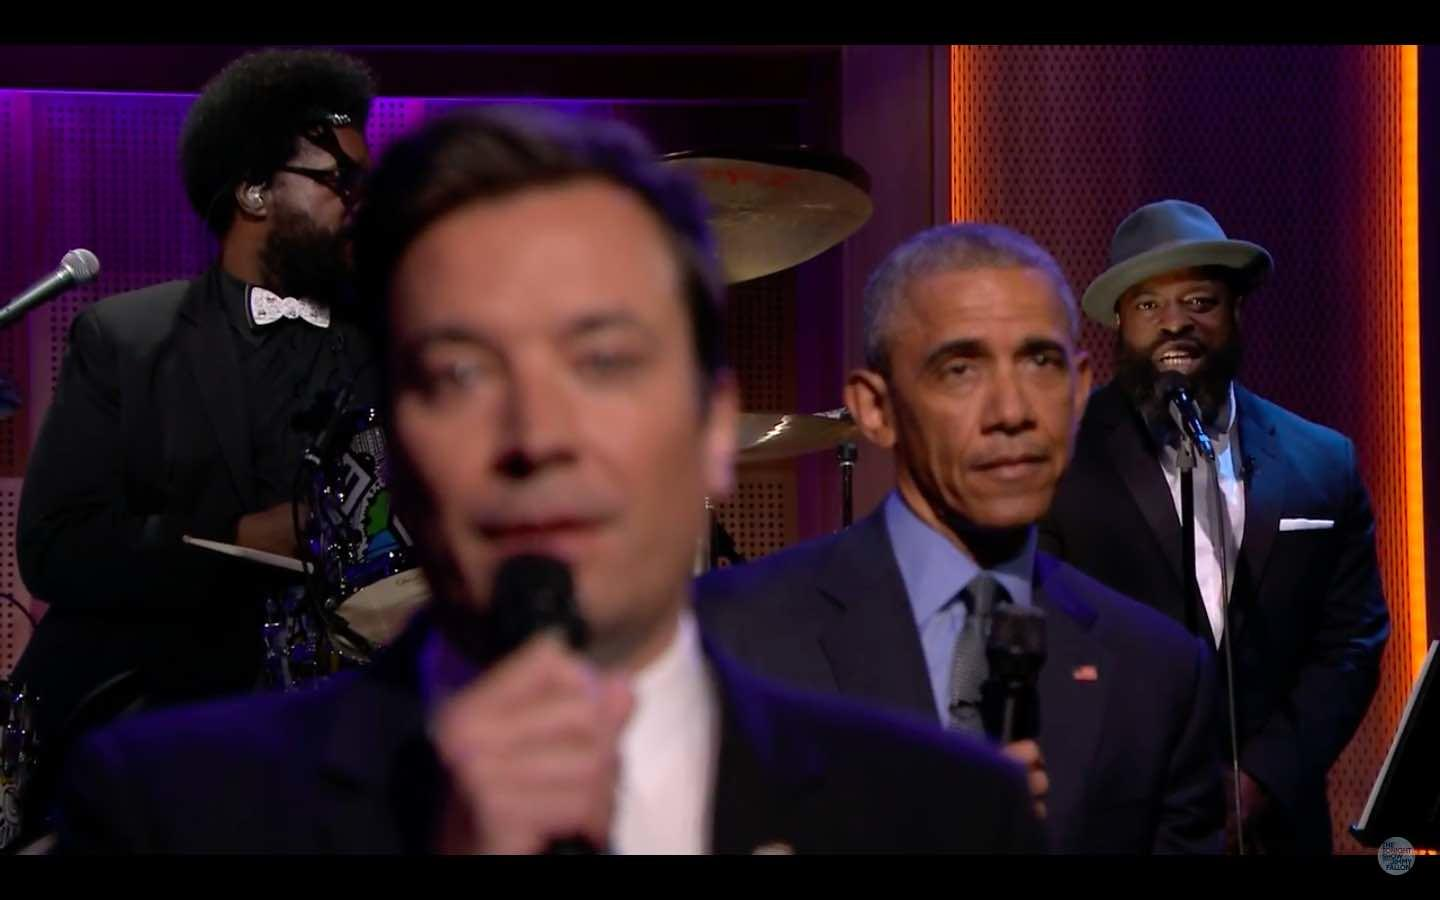 Watch: President Obama 'Slow Jams The News' With Jimmy Fallon On The Tonight Show